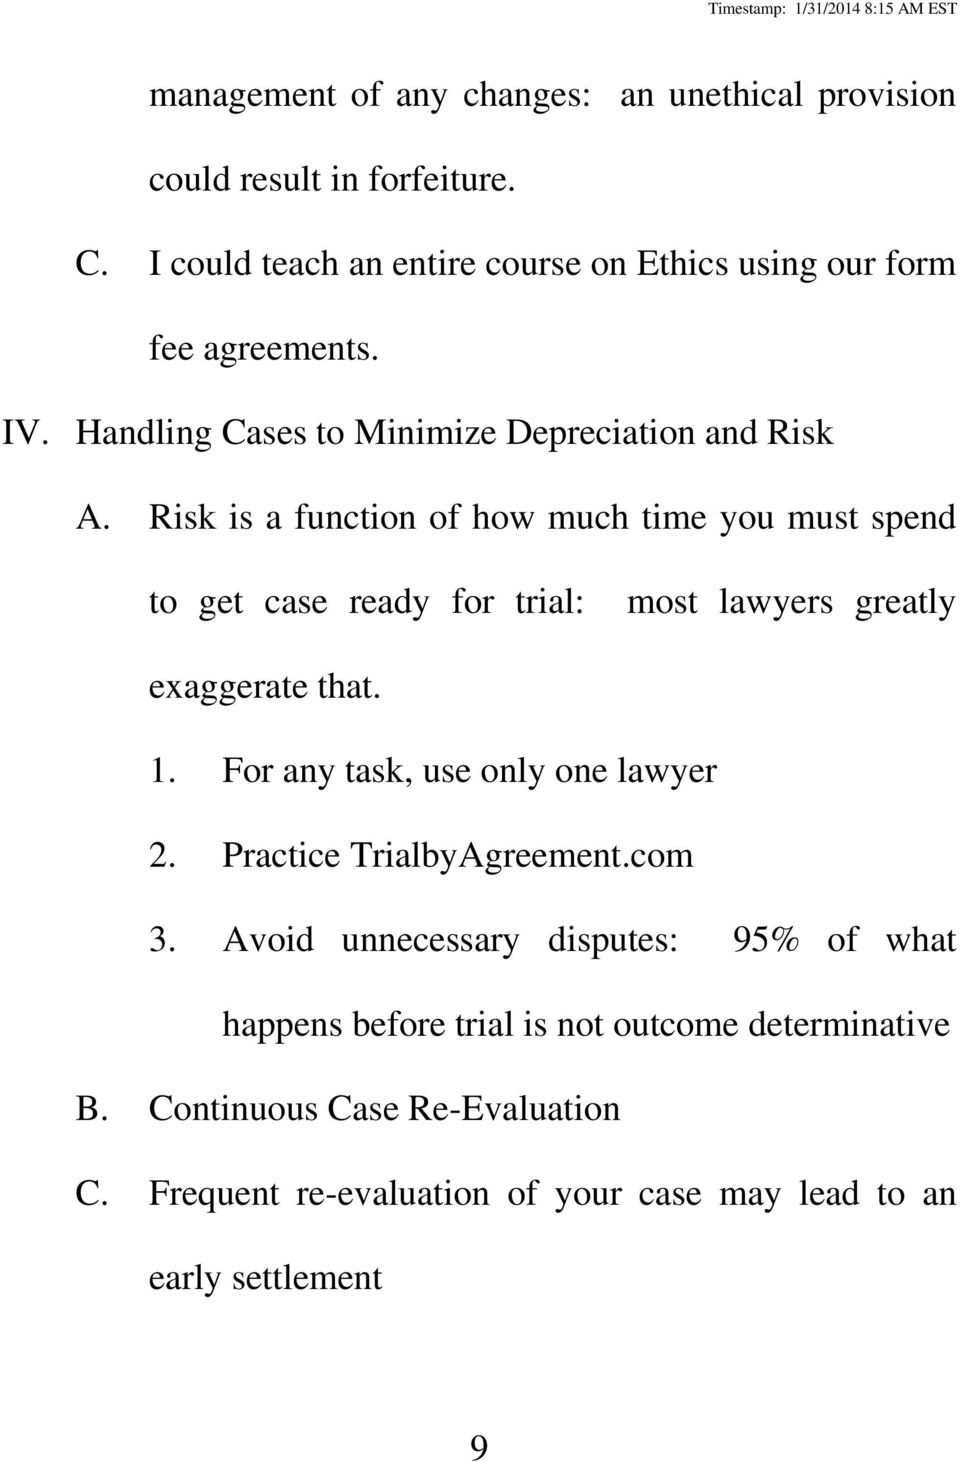 Risk is a function of how much time you must spend to get case ready for trial: most lawyers greatly exaggerate that. 1.